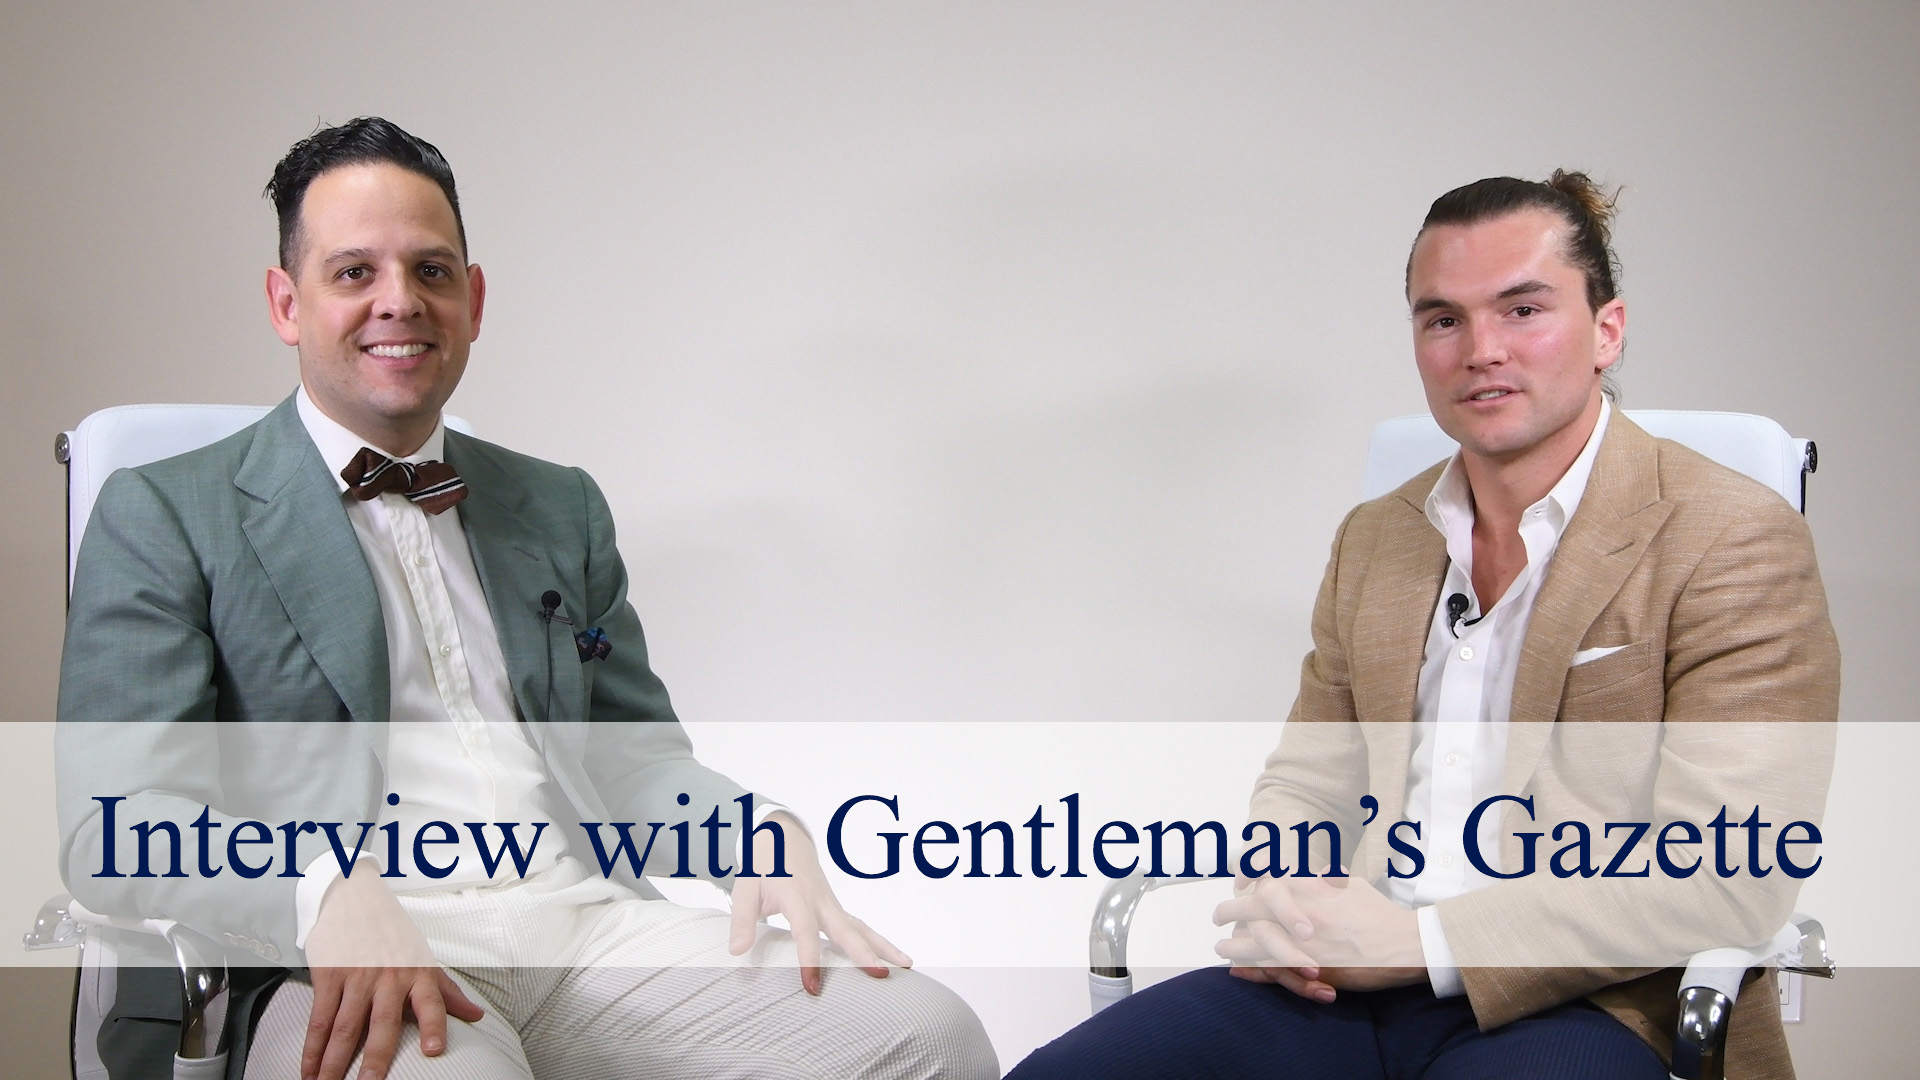 gentlemans gazette interview